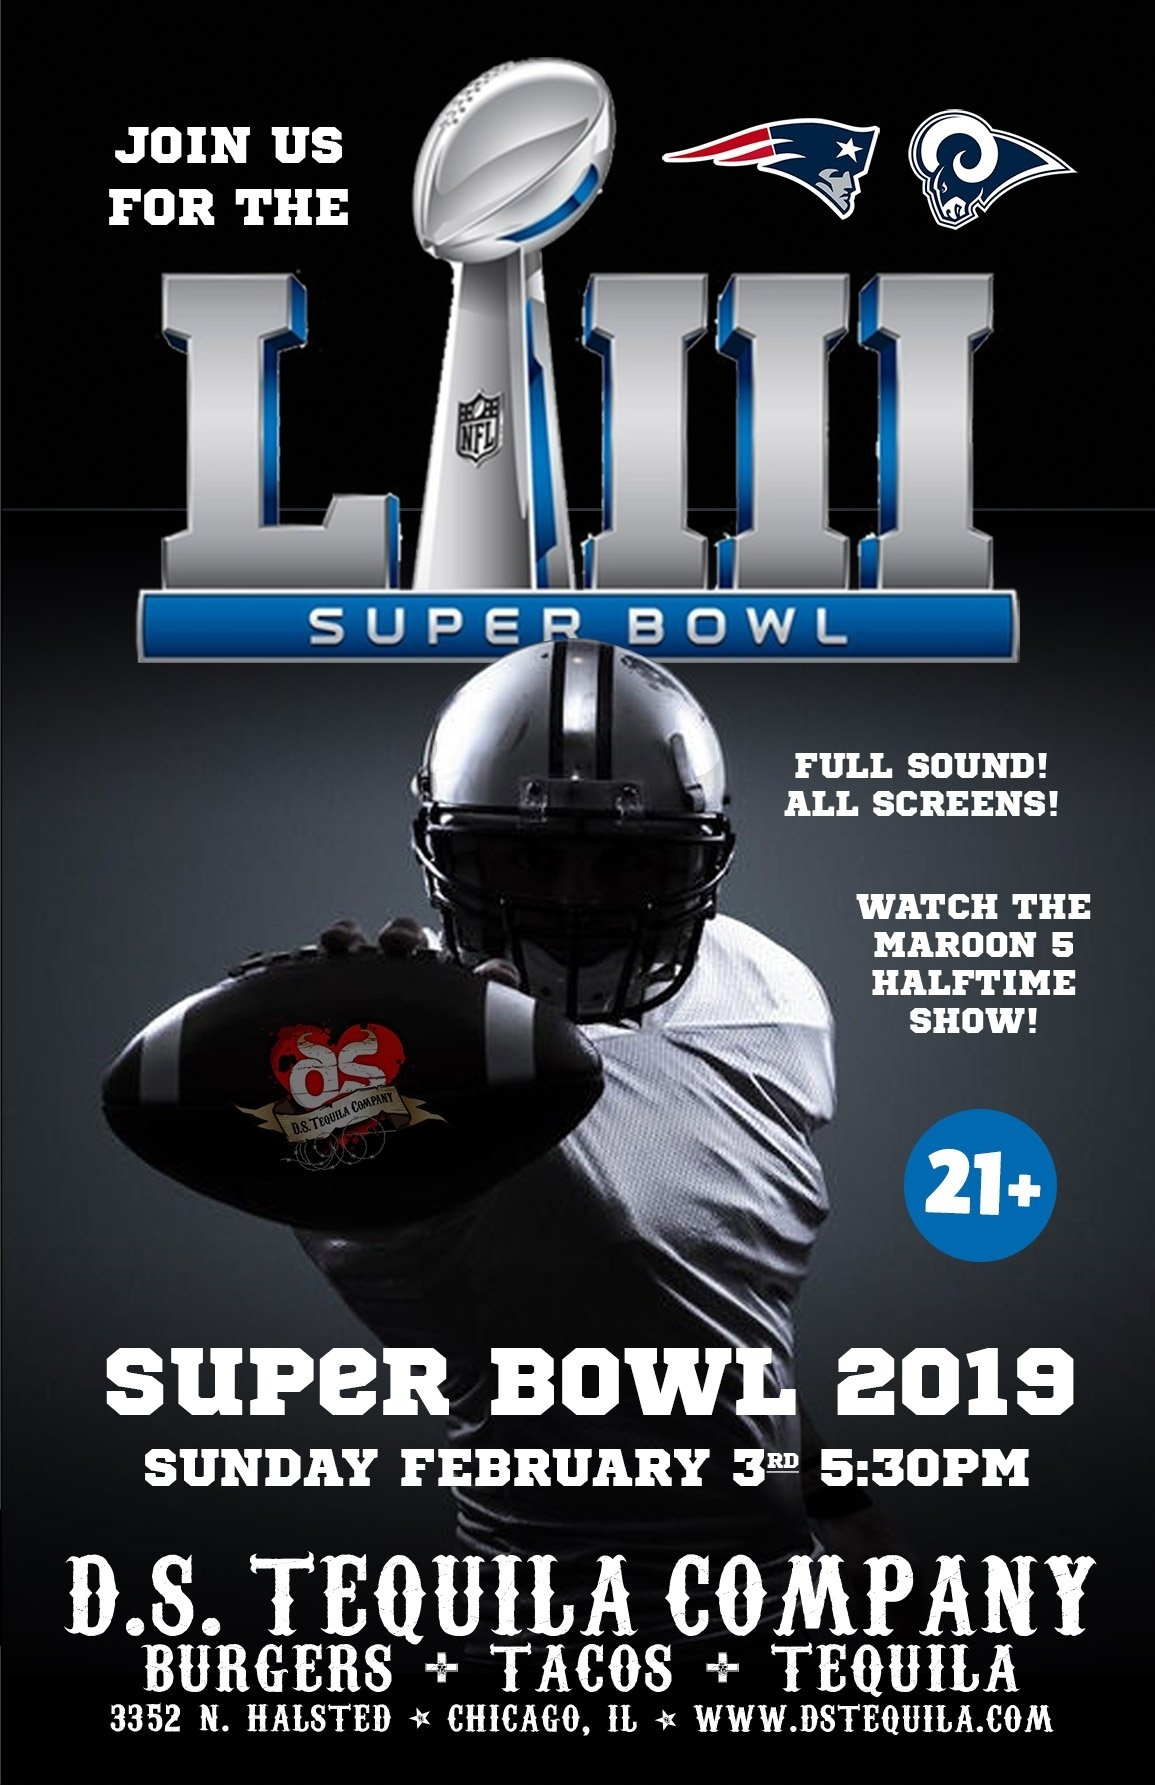 Super Bowl Sunday Funday 2019 ⋆ D.s. Tequila Co. for Super Bowl Sunday 2019